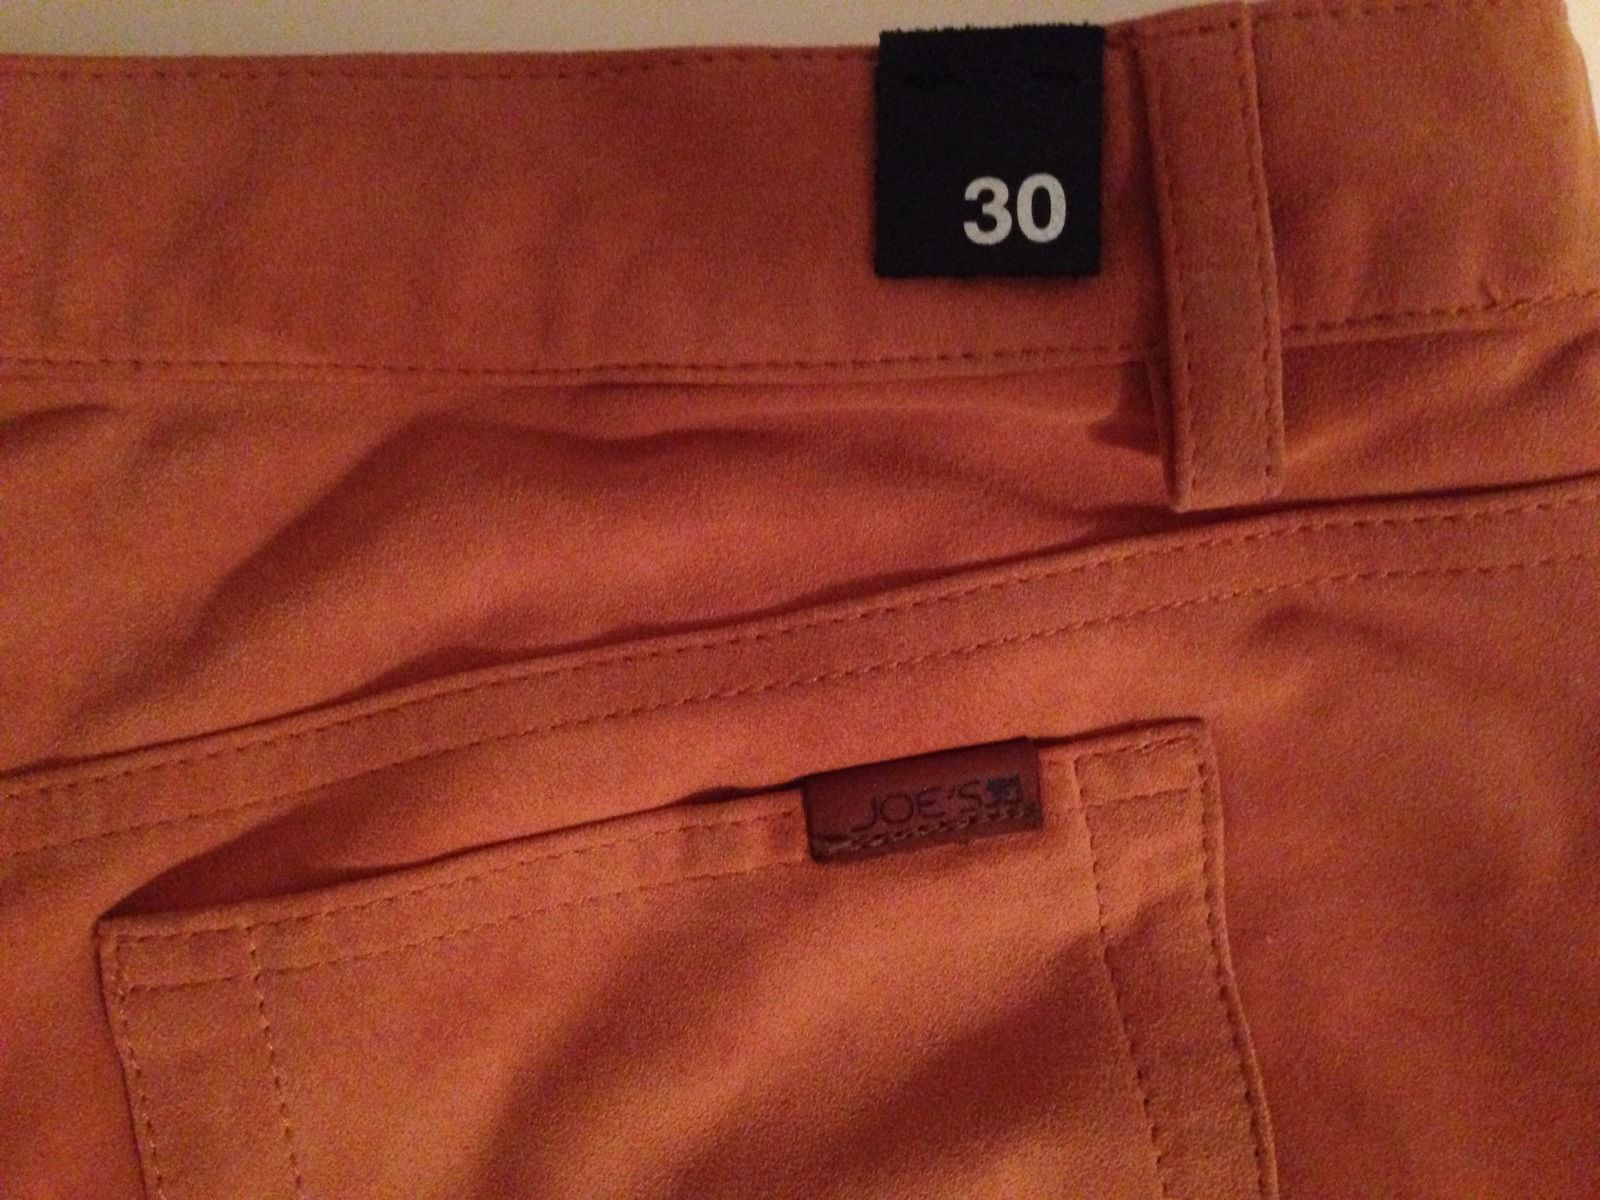 JOE'S JEANS SUEDE LEATHER SHORTS - NWT SIZE 30